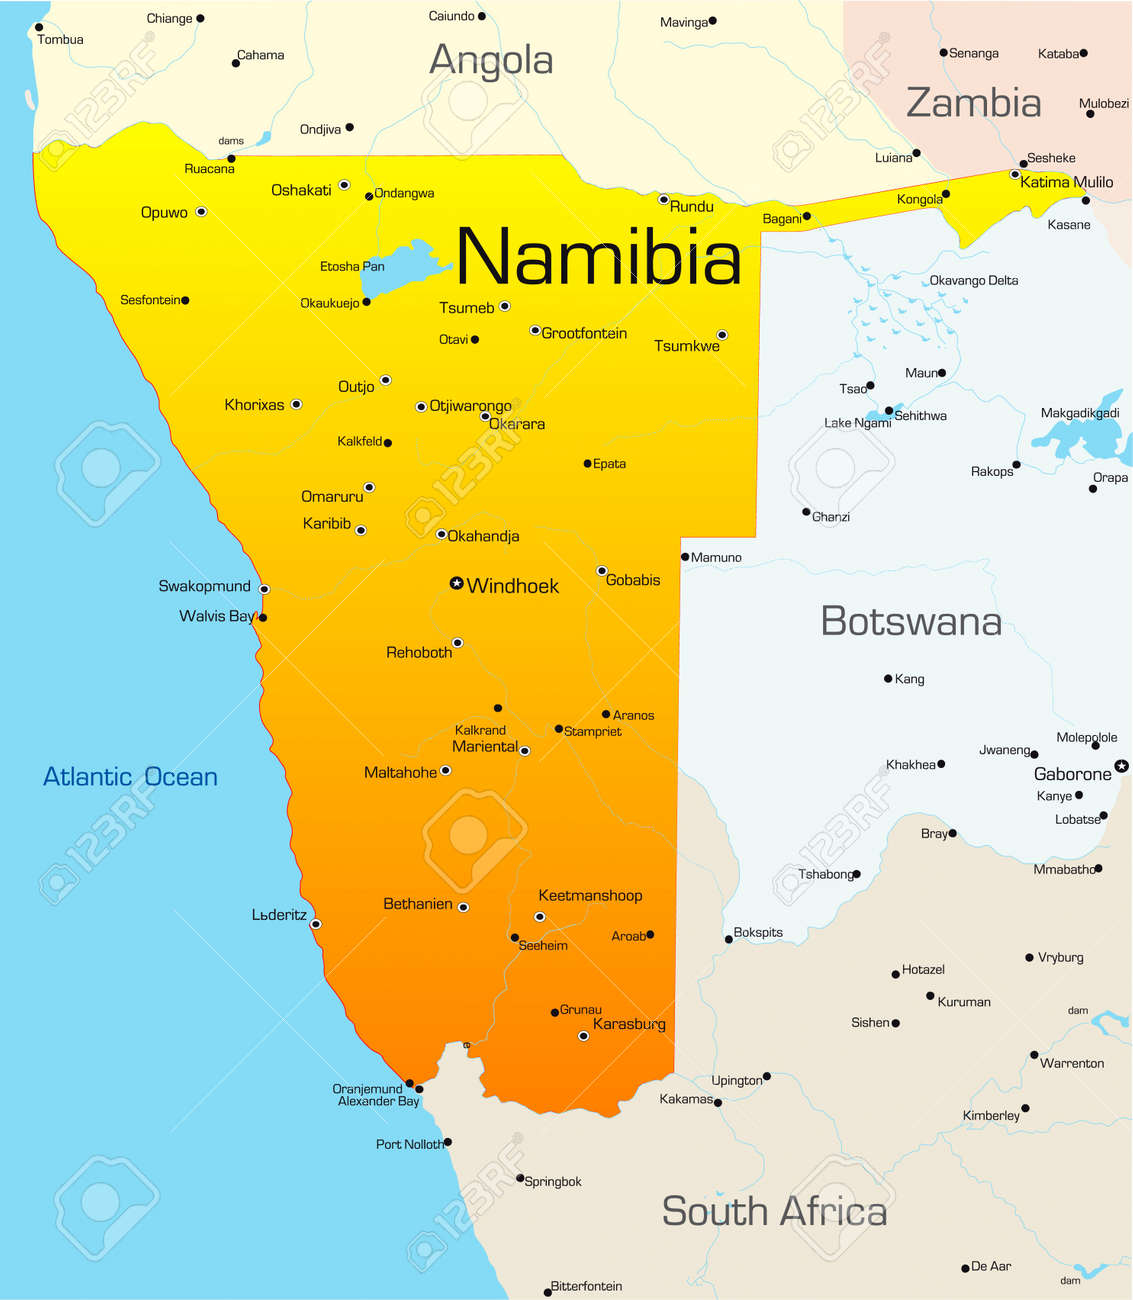 Abstract Vector Color Royalty Map Cliparts Image And Vectors Of Country Namibia Free 3529196 Illustration Stock